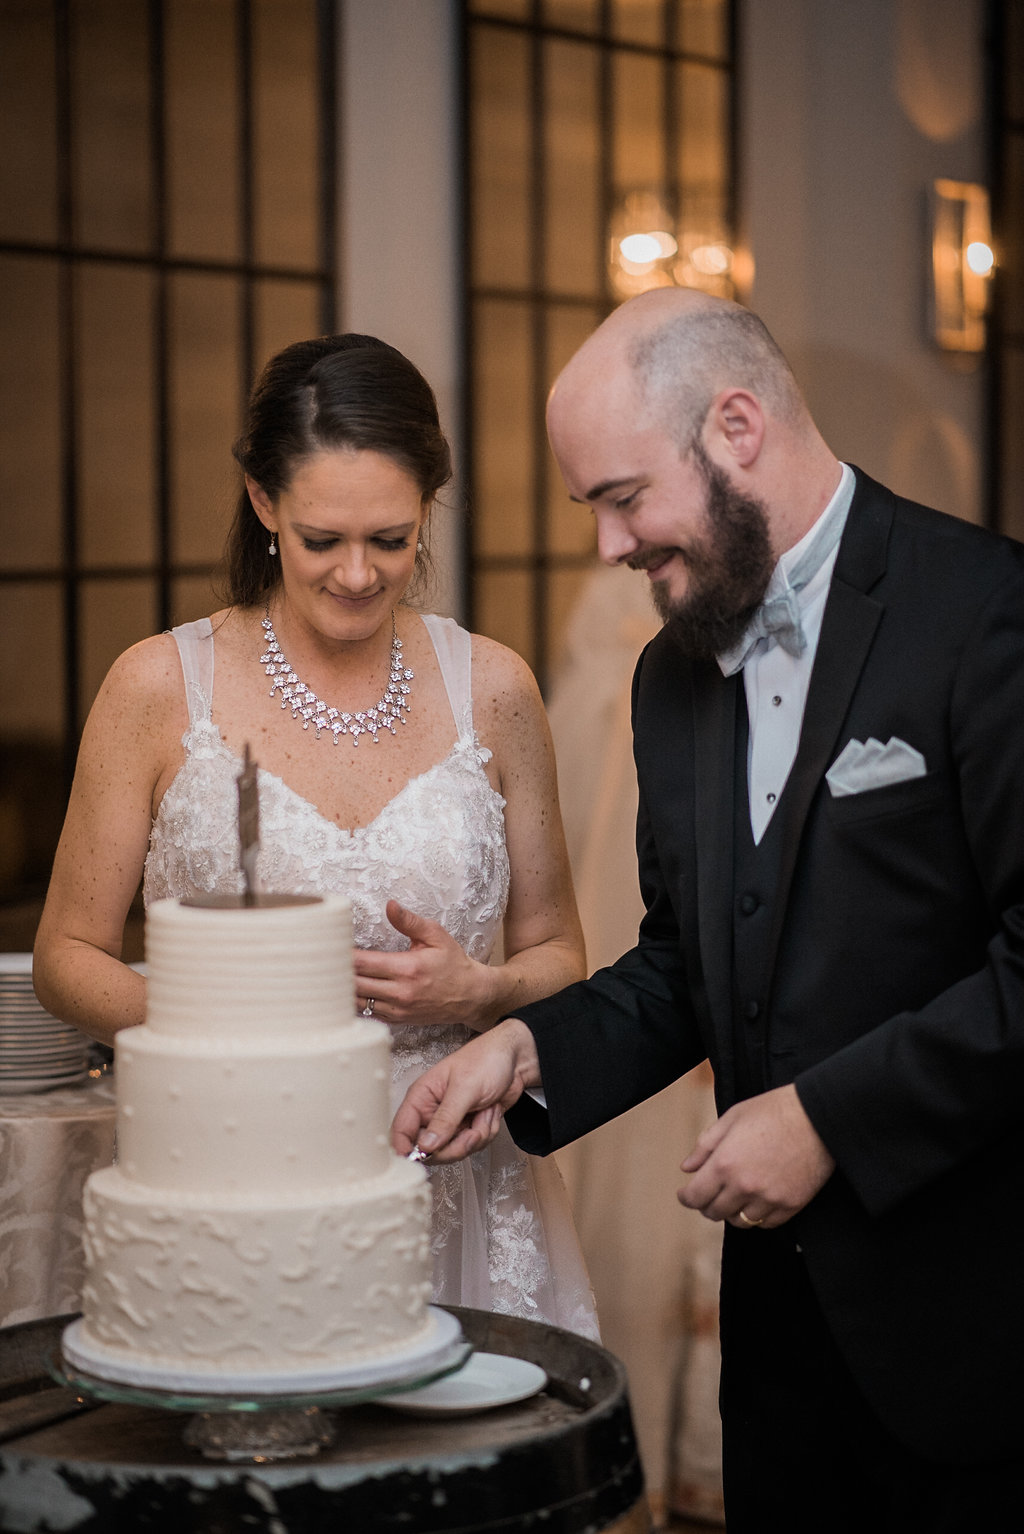 brid and groom cutting cake at stone tower winery photo